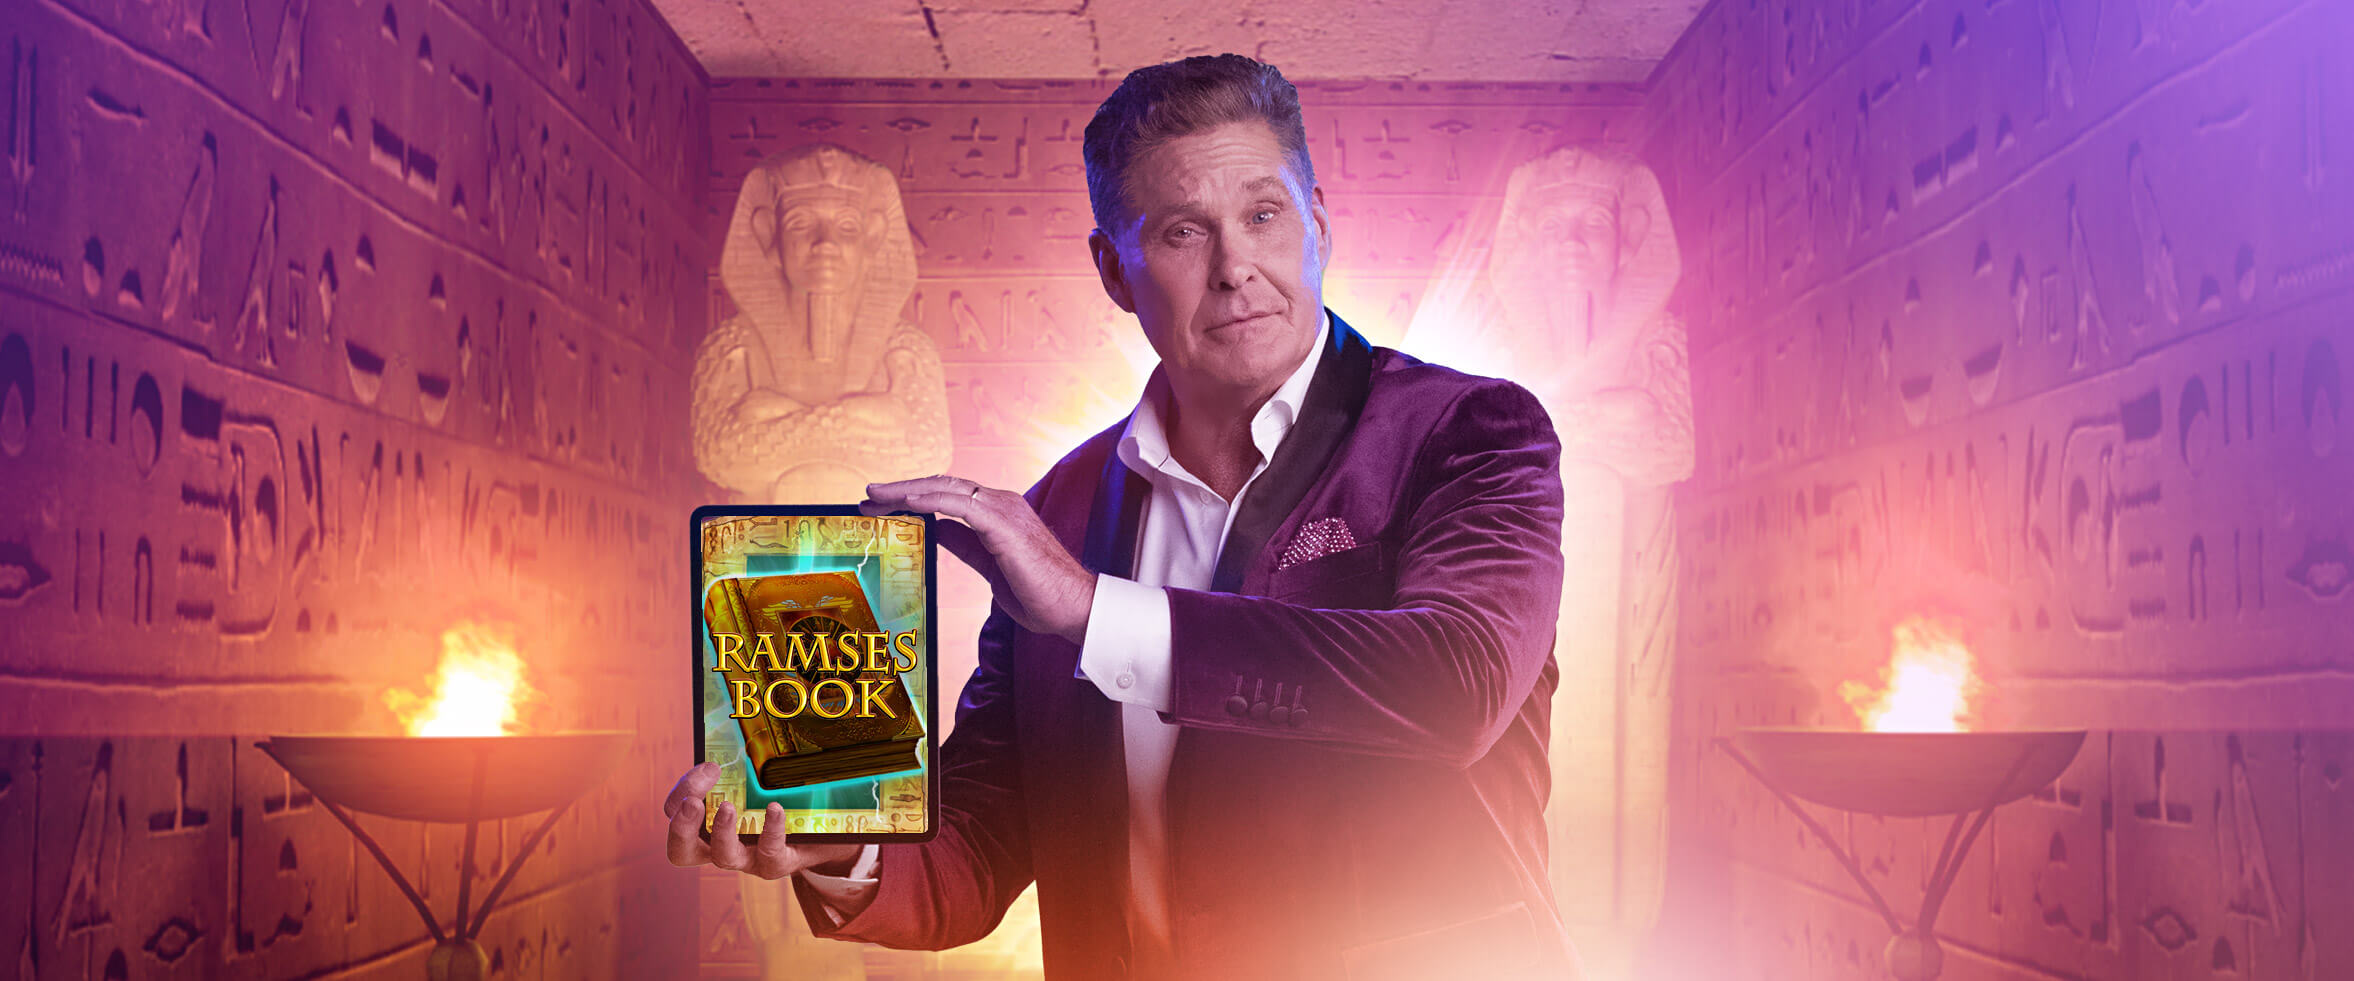 Play Ramses Book to Compete for $10k in Prizes